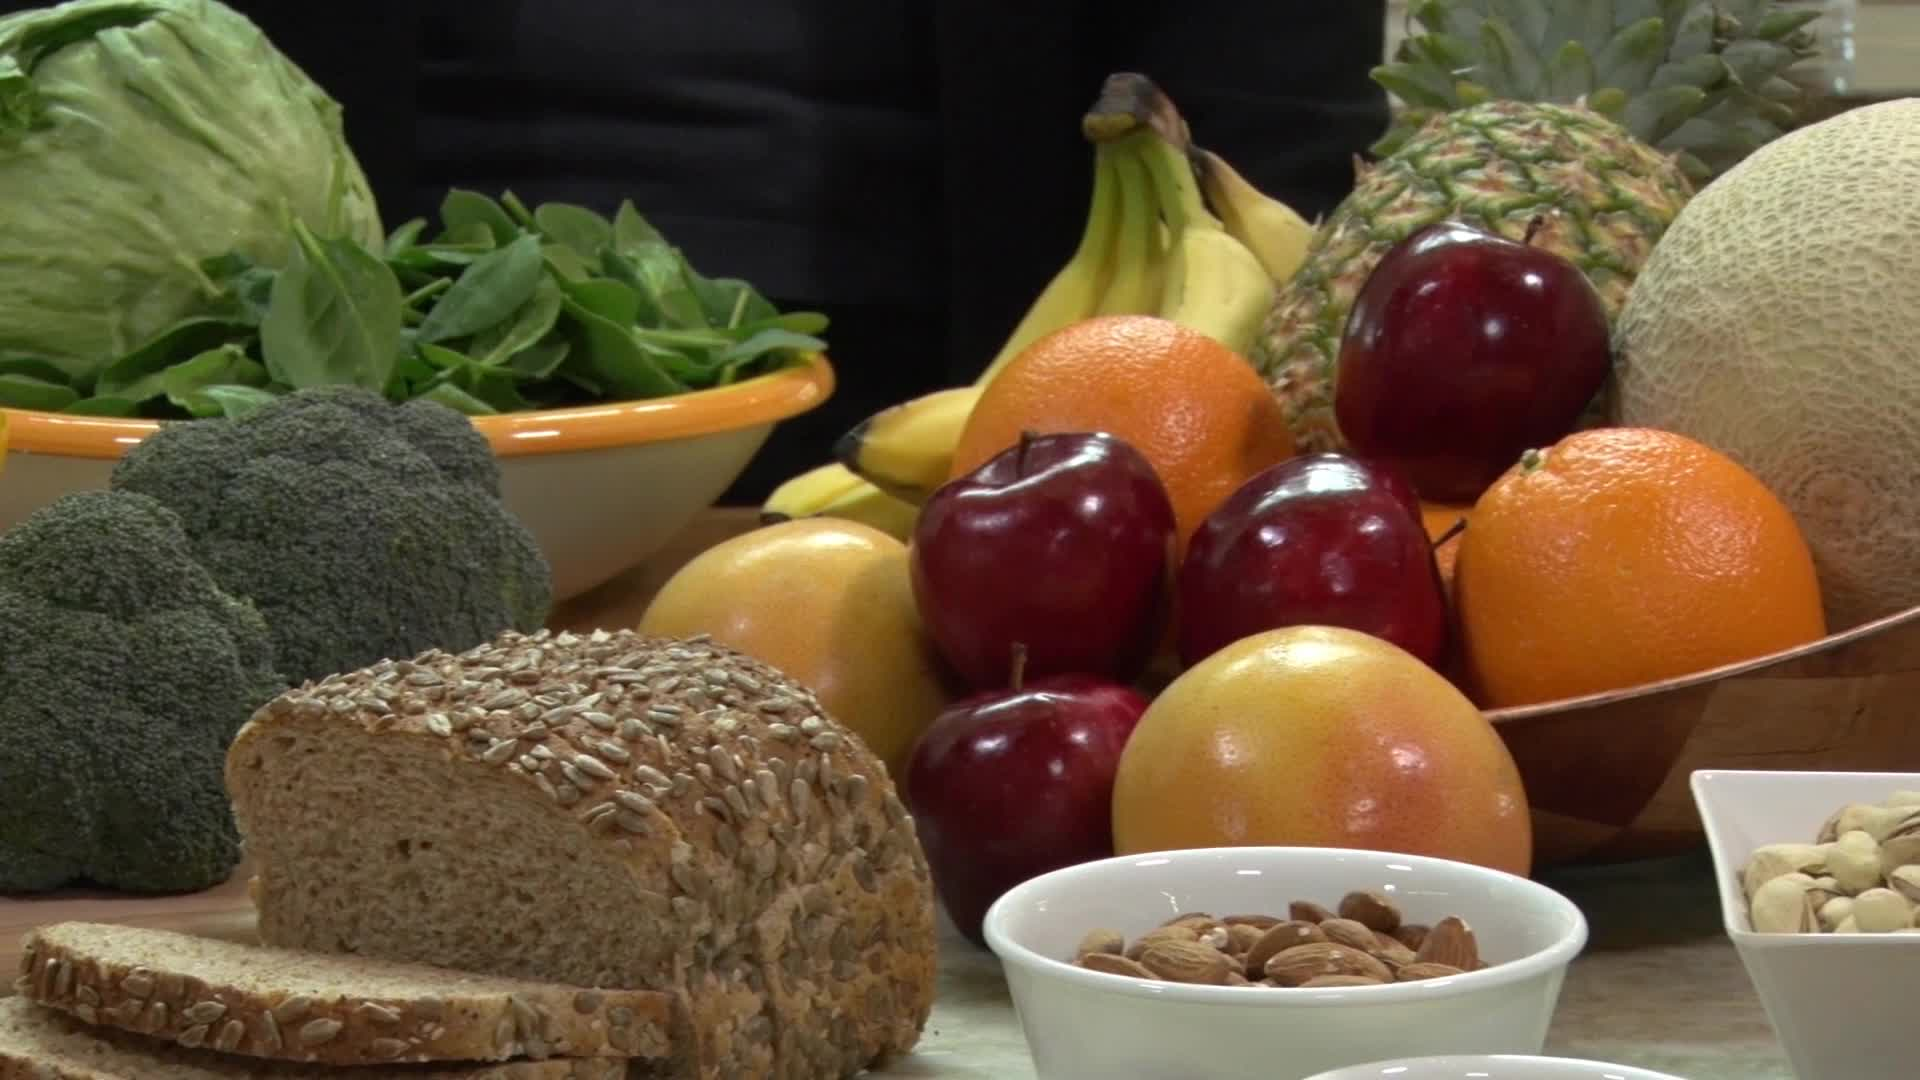 Nutritionist Gail Rampersaud provides simple tips to stay healthy during cold and flu season.